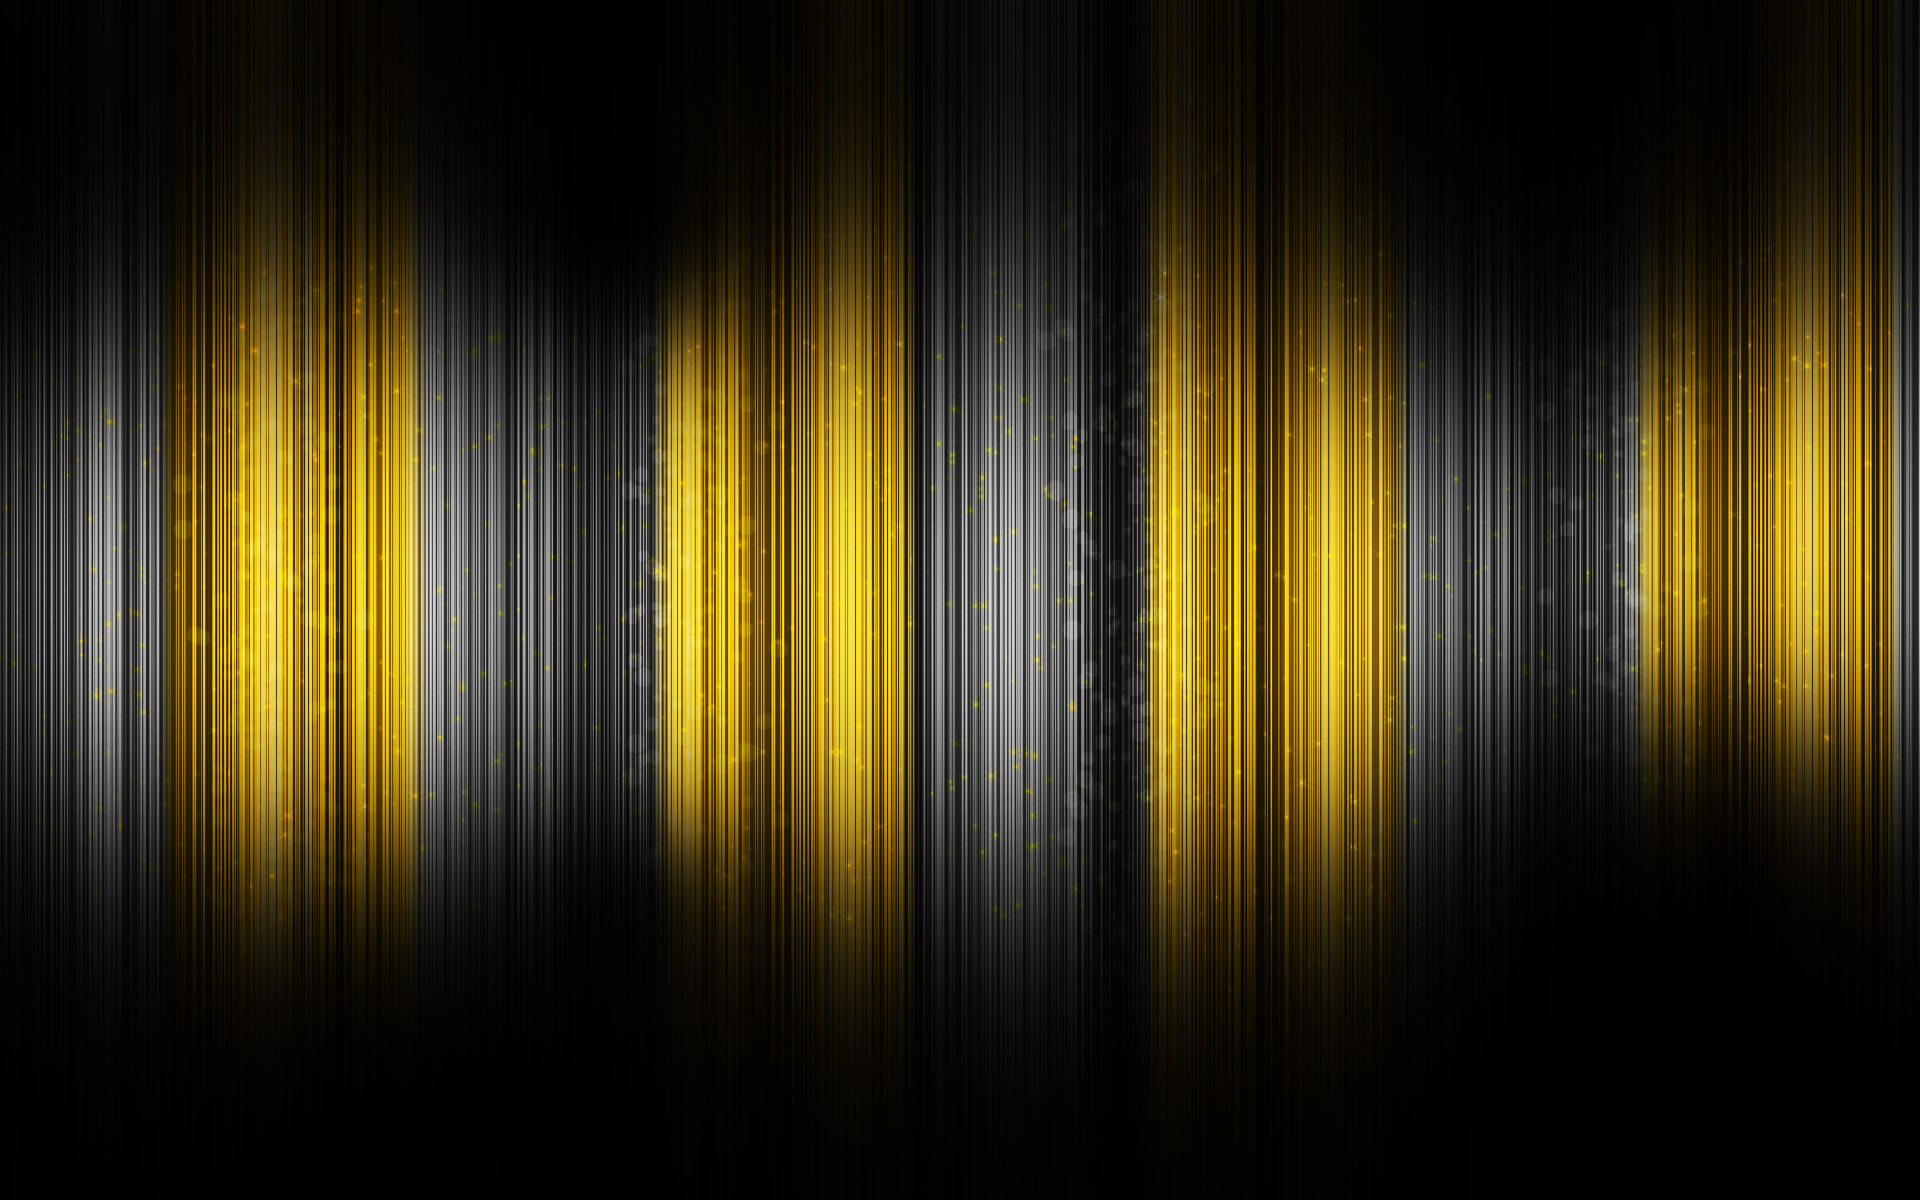 Black And Gold Abstract Wallpaper 13 High Resolution Wallpaper 1920x1200